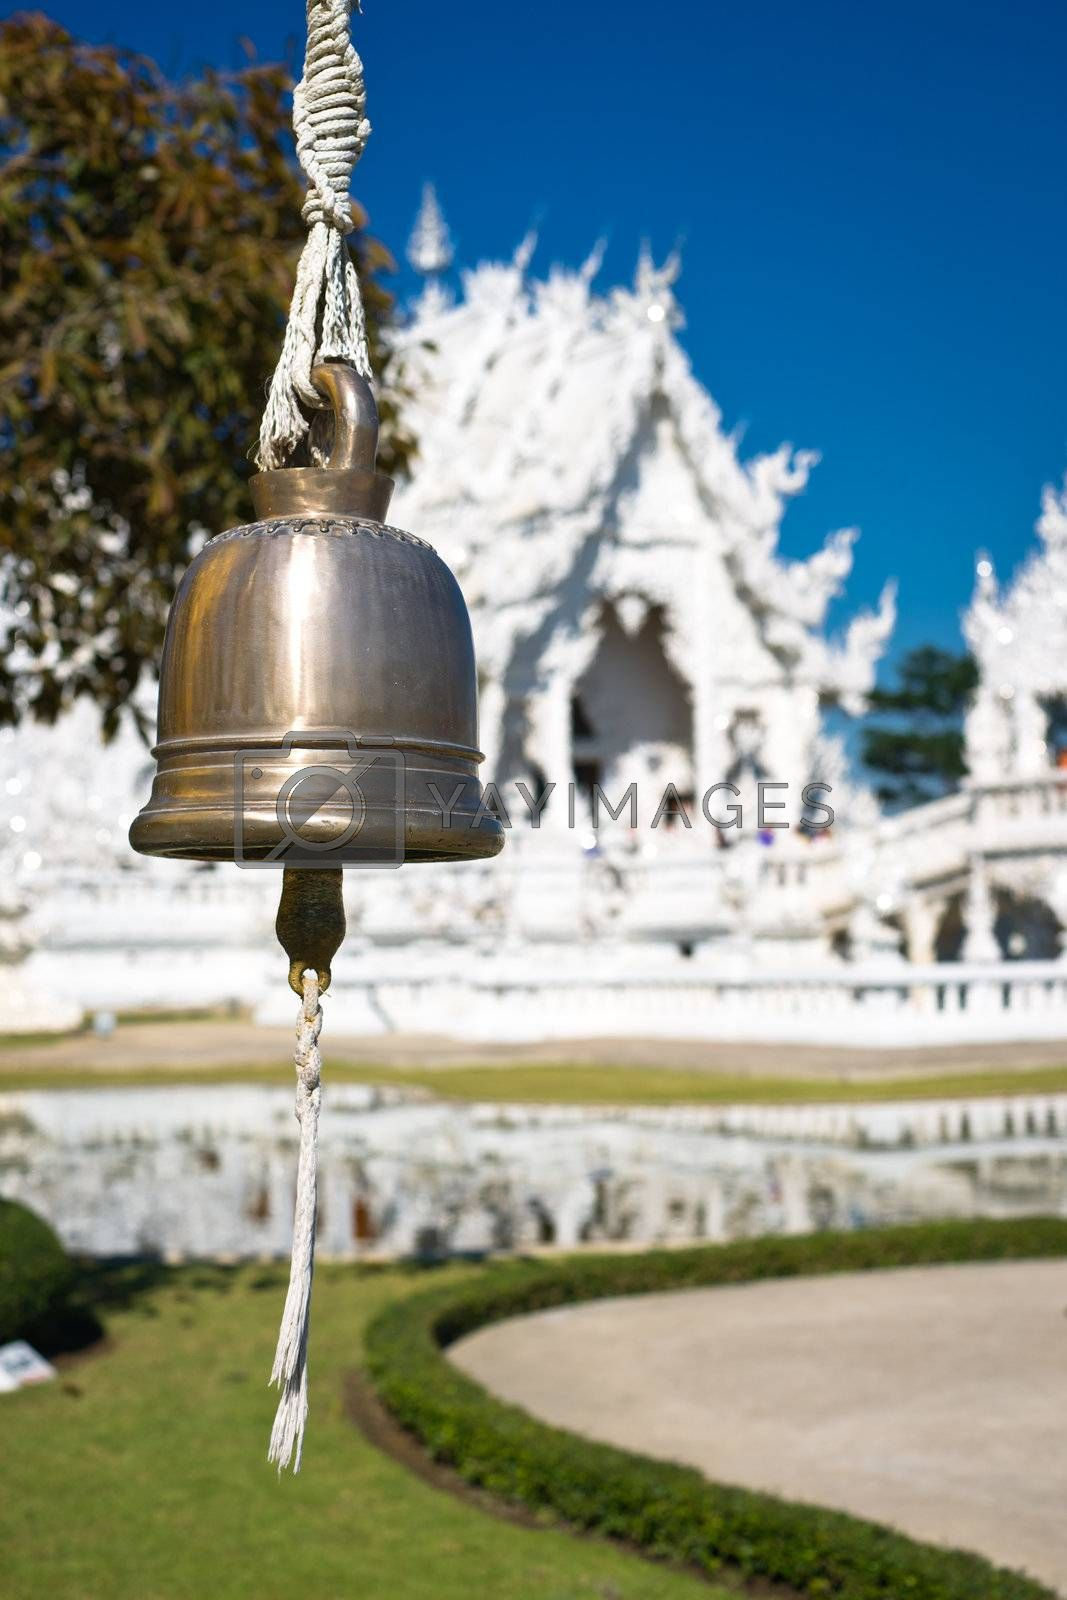 Bell in white temple Wat Rong Khun. Wat Rong Khun is a contemporary unconventional Buddhist temple in Chiang Rai, Chiangmai province, Thailand. It is designed in white color.